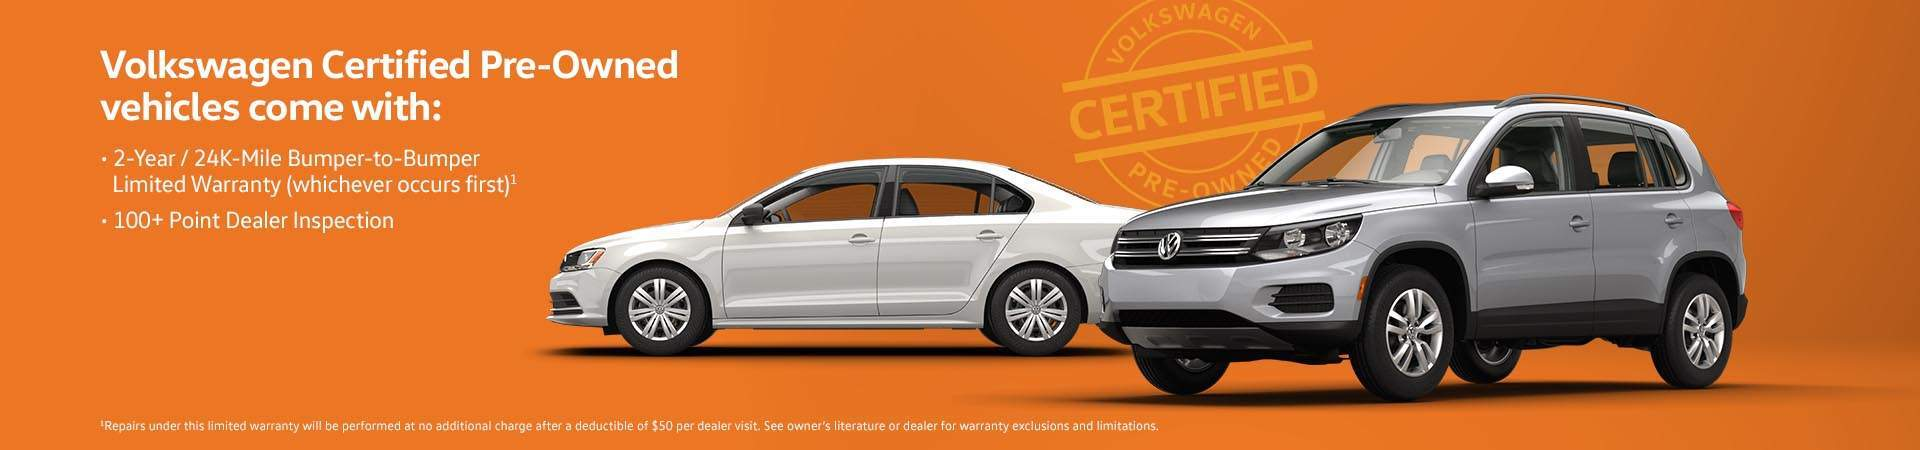 VW Certified Pre-Owned: Go with Confidence!